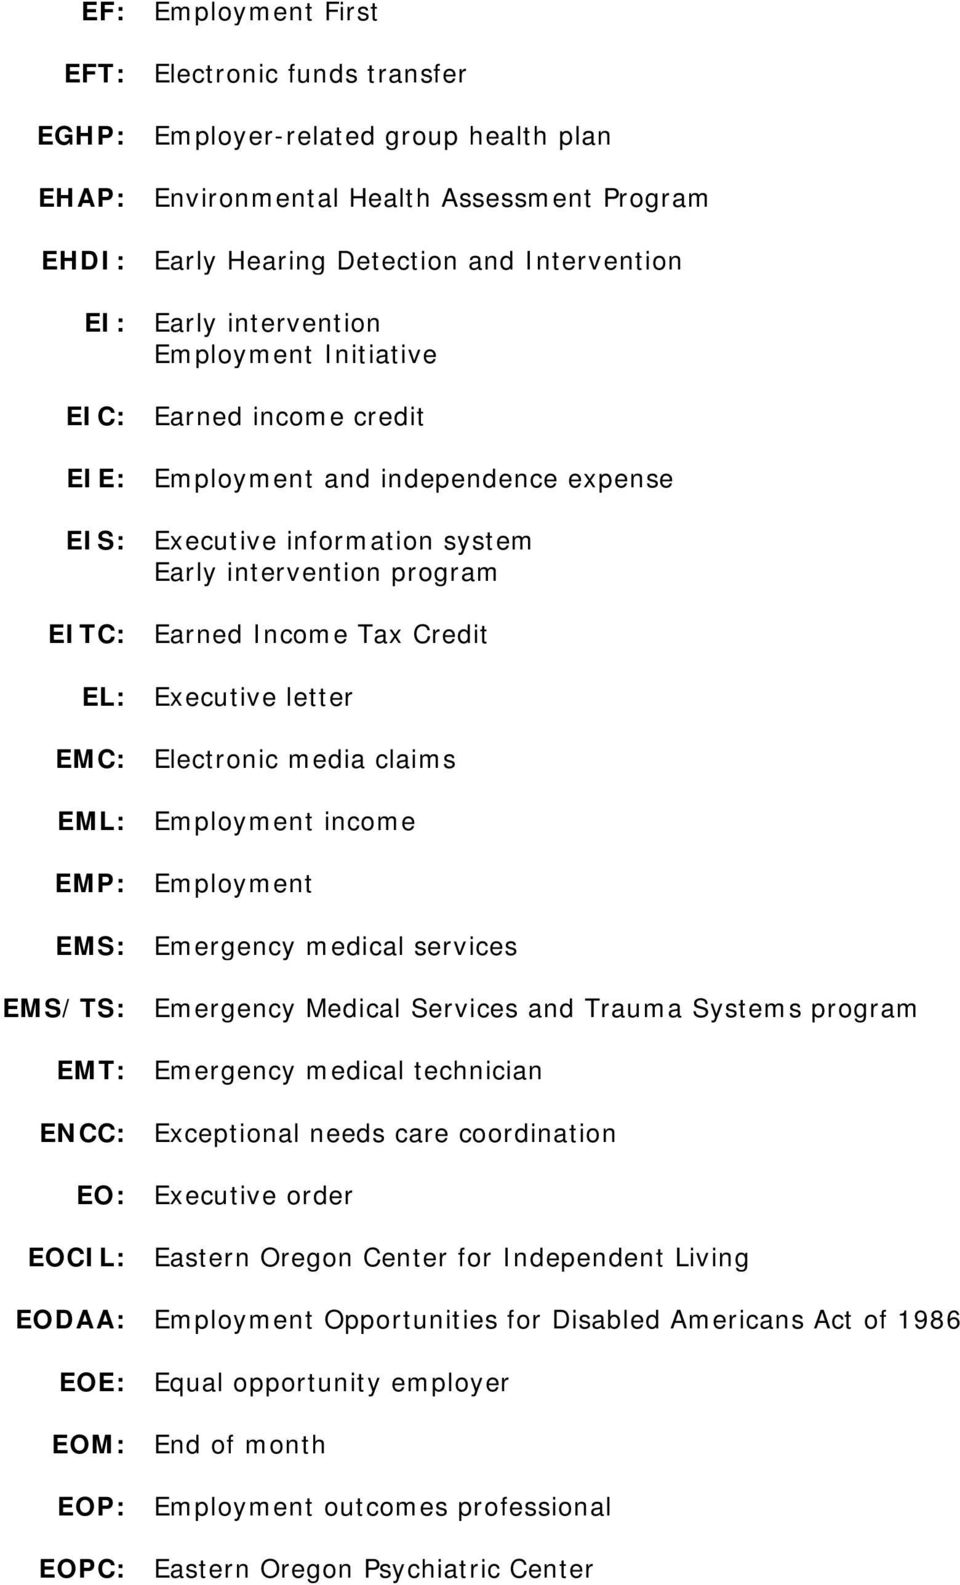 Executive letter EMC: Electronic media claims EML: Employment income EMP: Employment EMS: Emergency medical services EMS/TS: Emergency Medical Services and Trauma Systems program EMT: Emergency